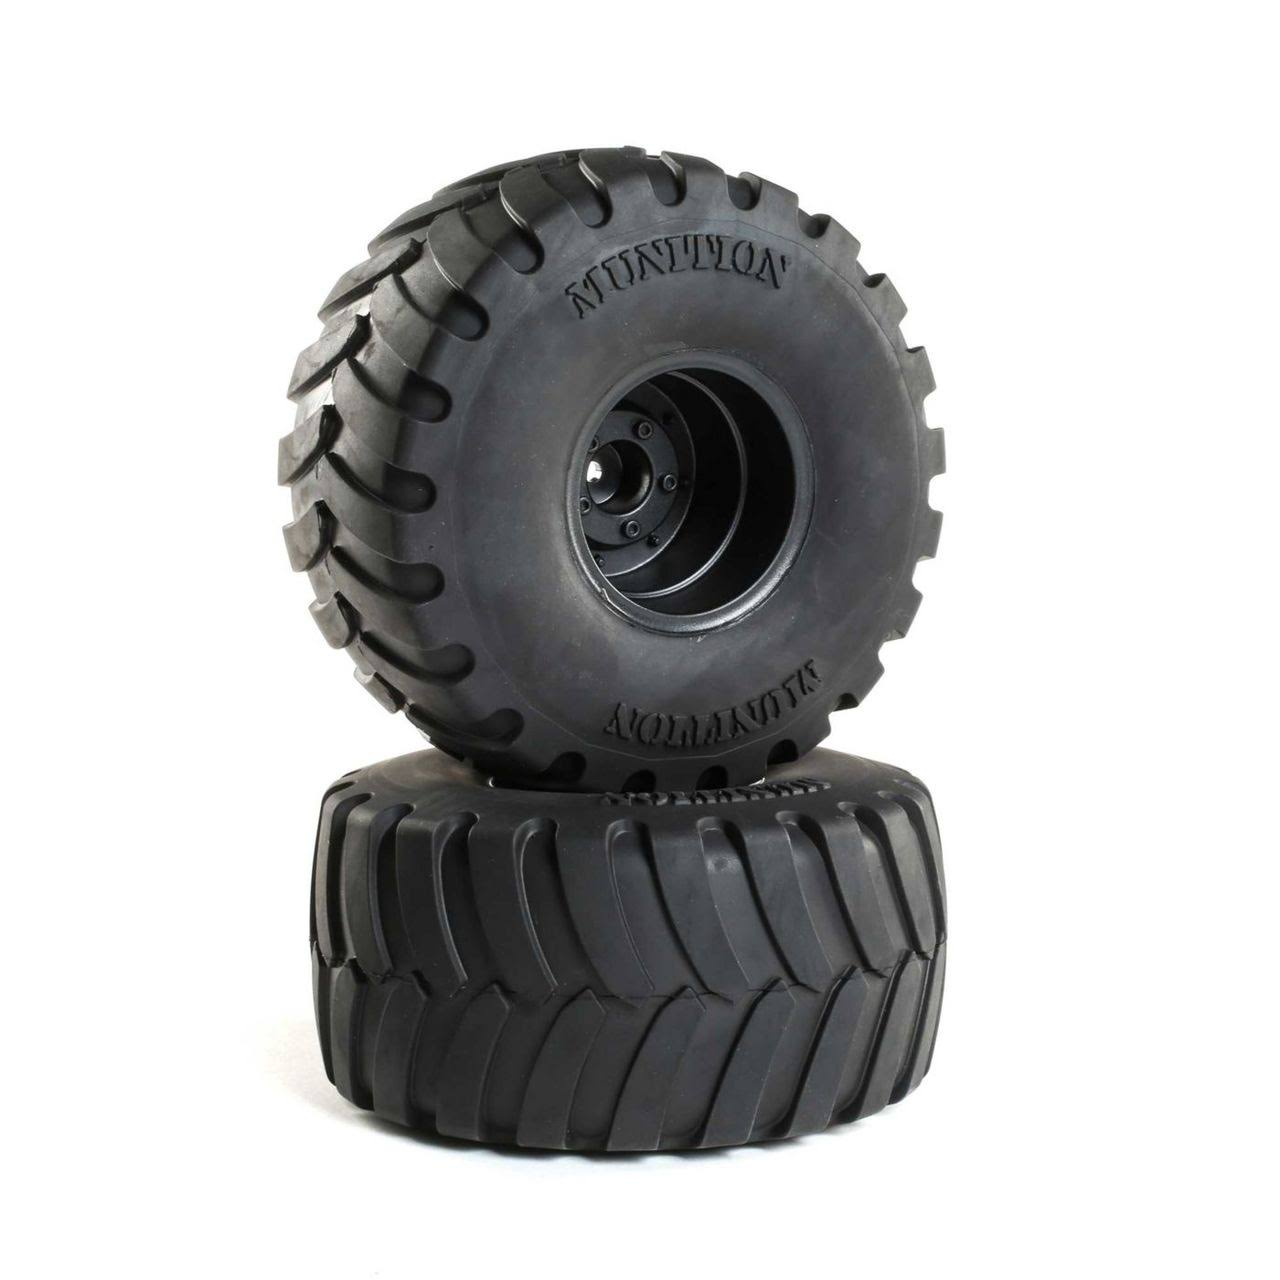 "Duratrax Munition MT 2.2"" Mounted Tires, Black (2) DTXC2903"